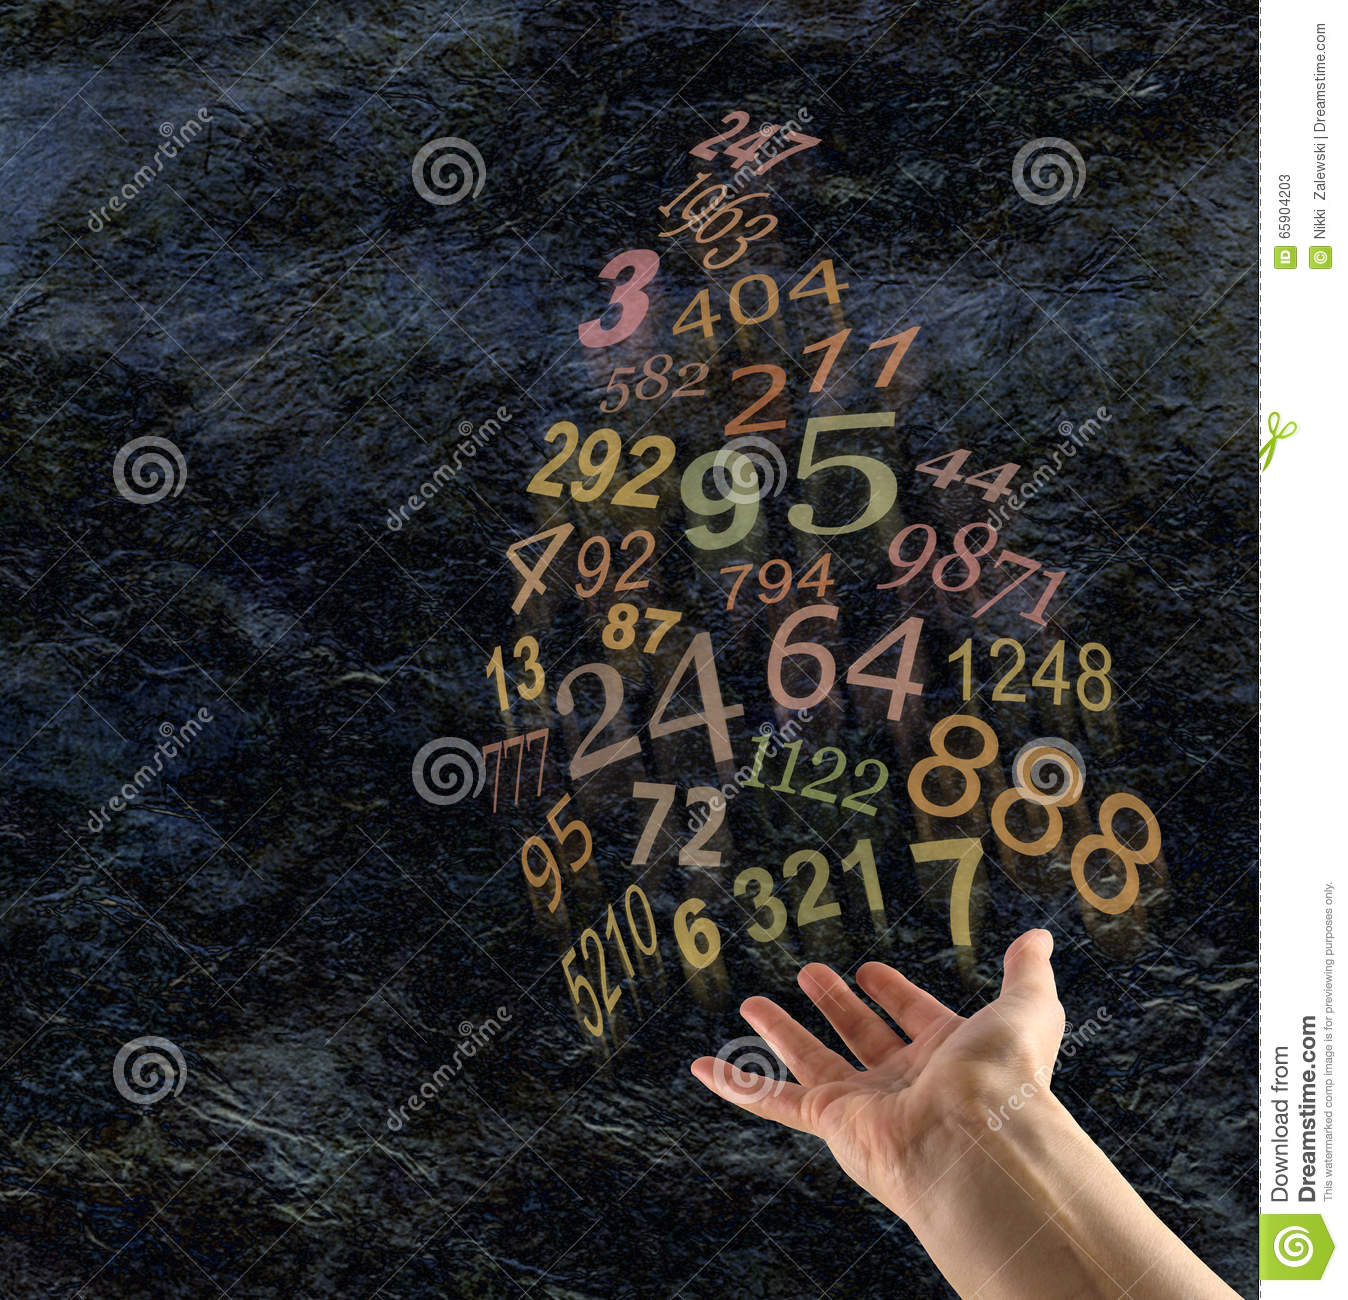 The Art of Numerology